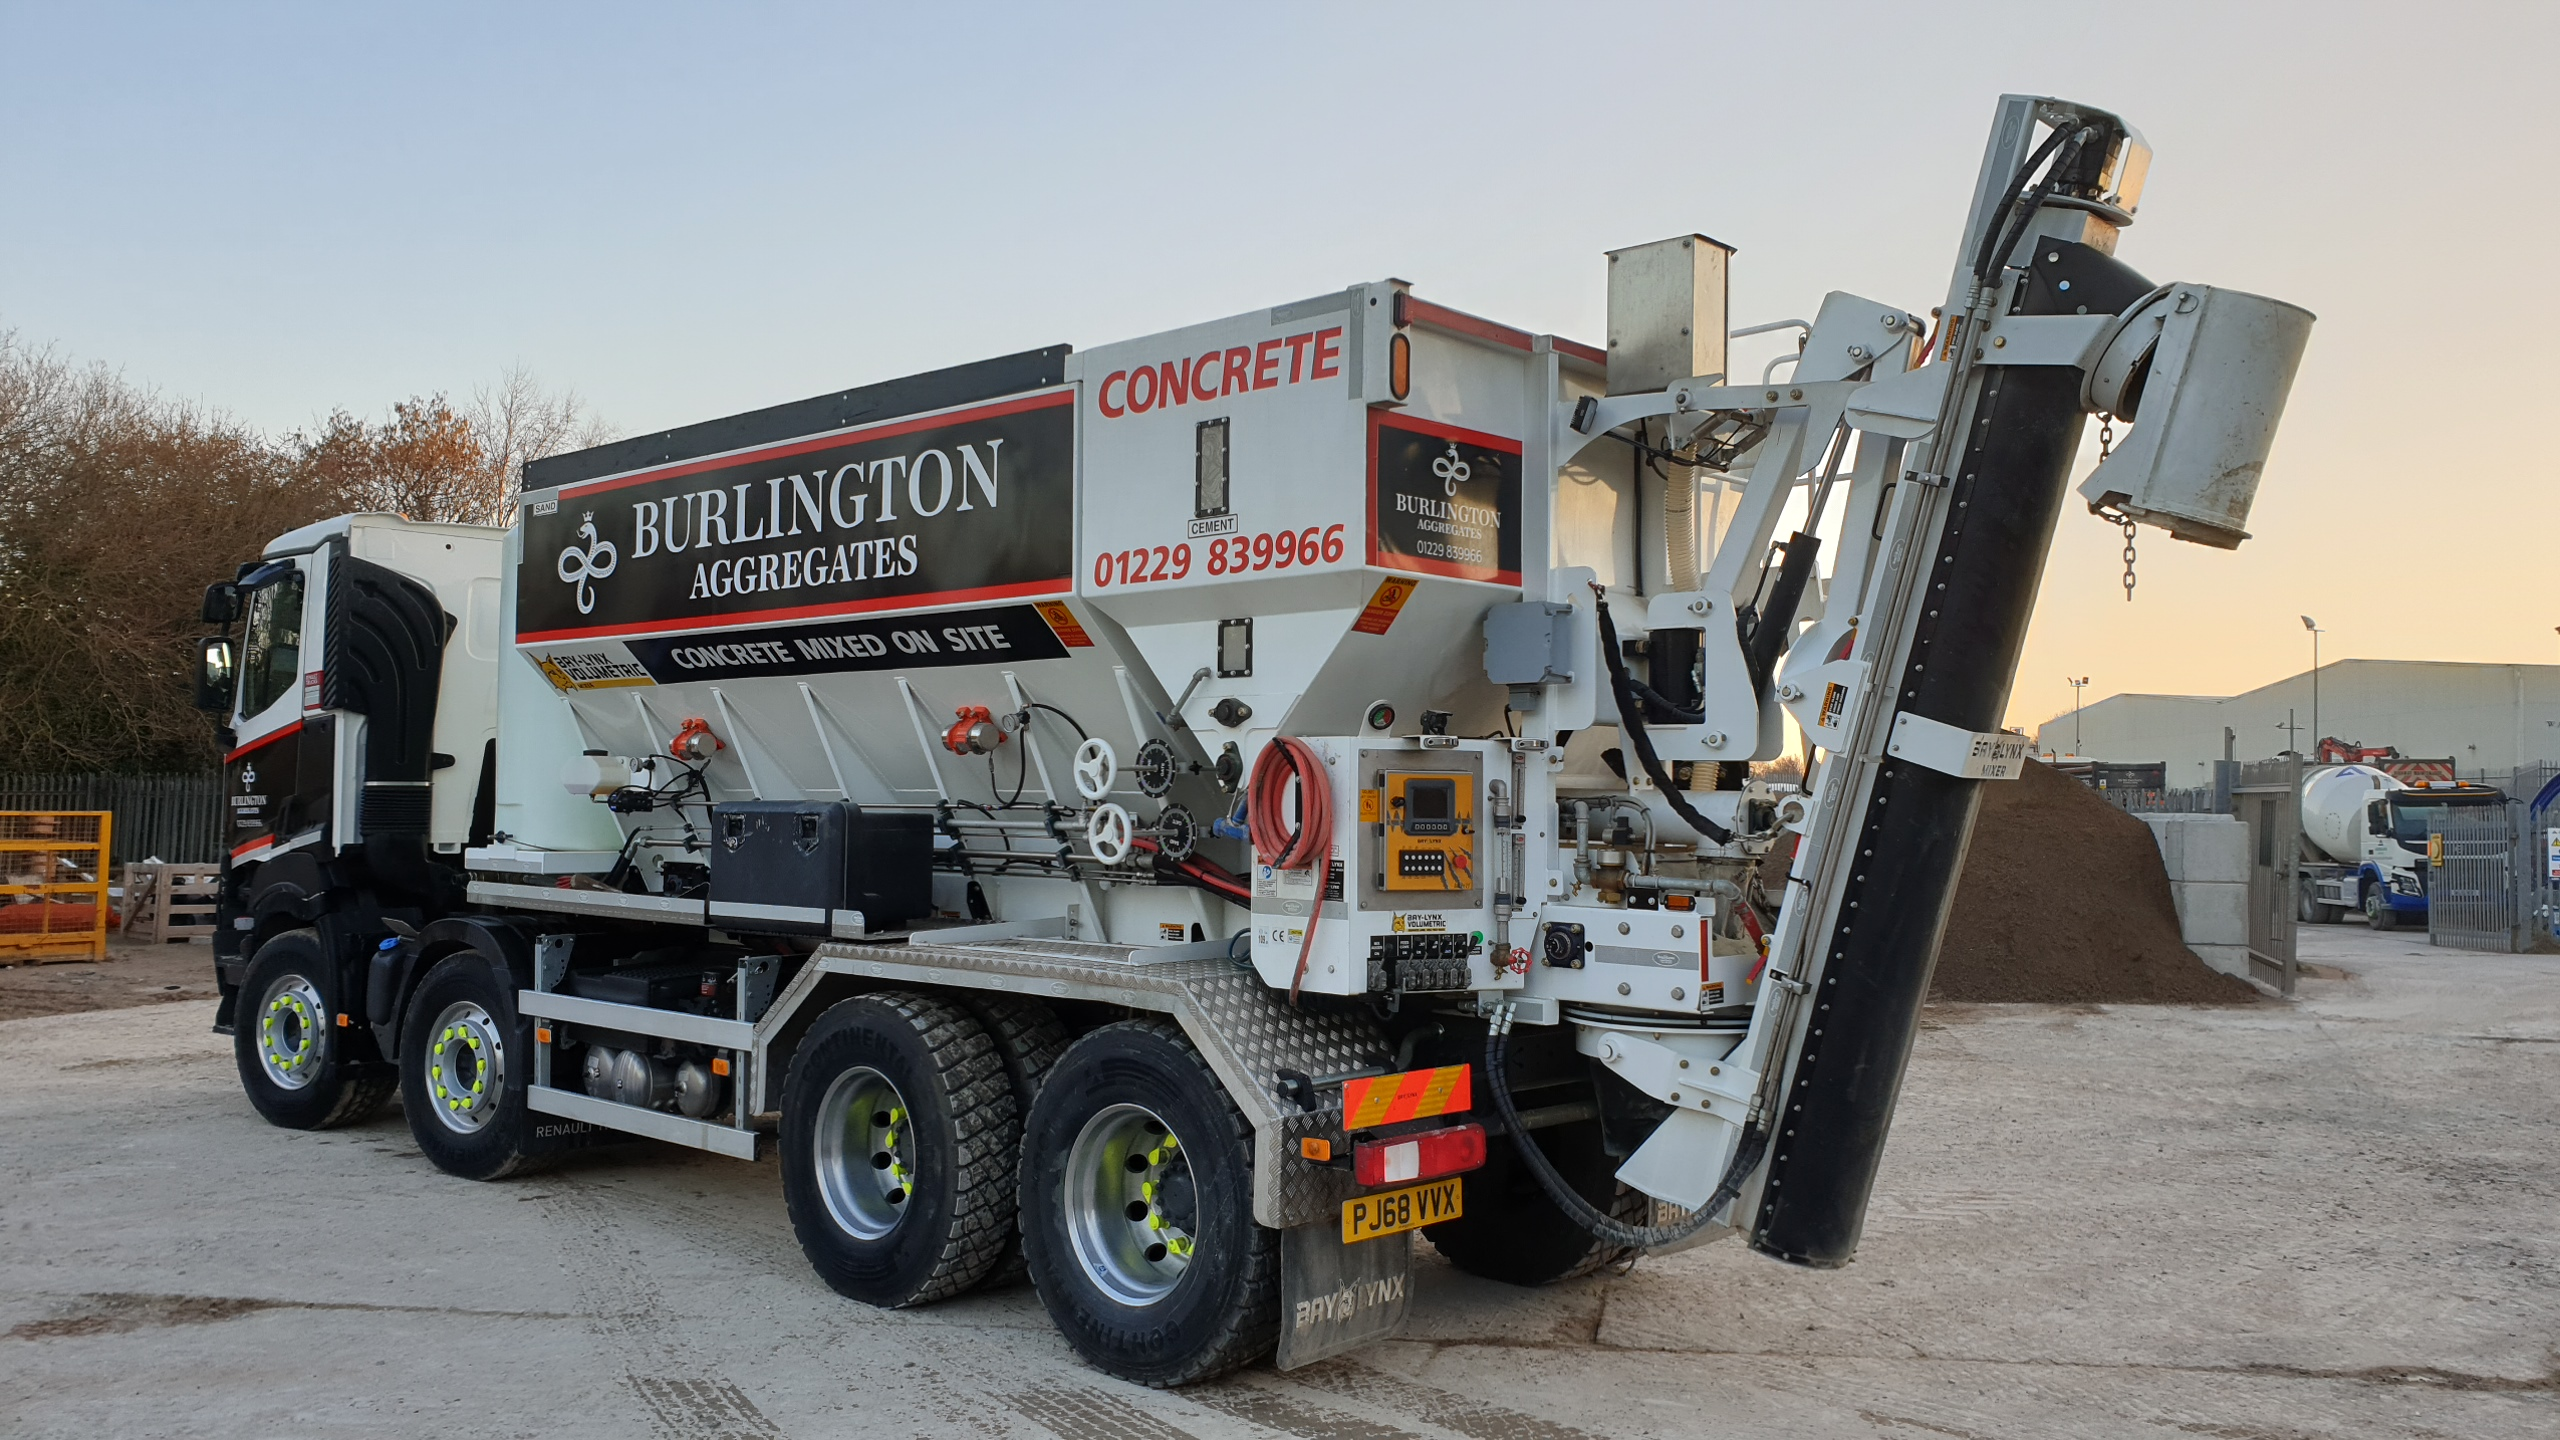 Burlington Aggregates | Concrete